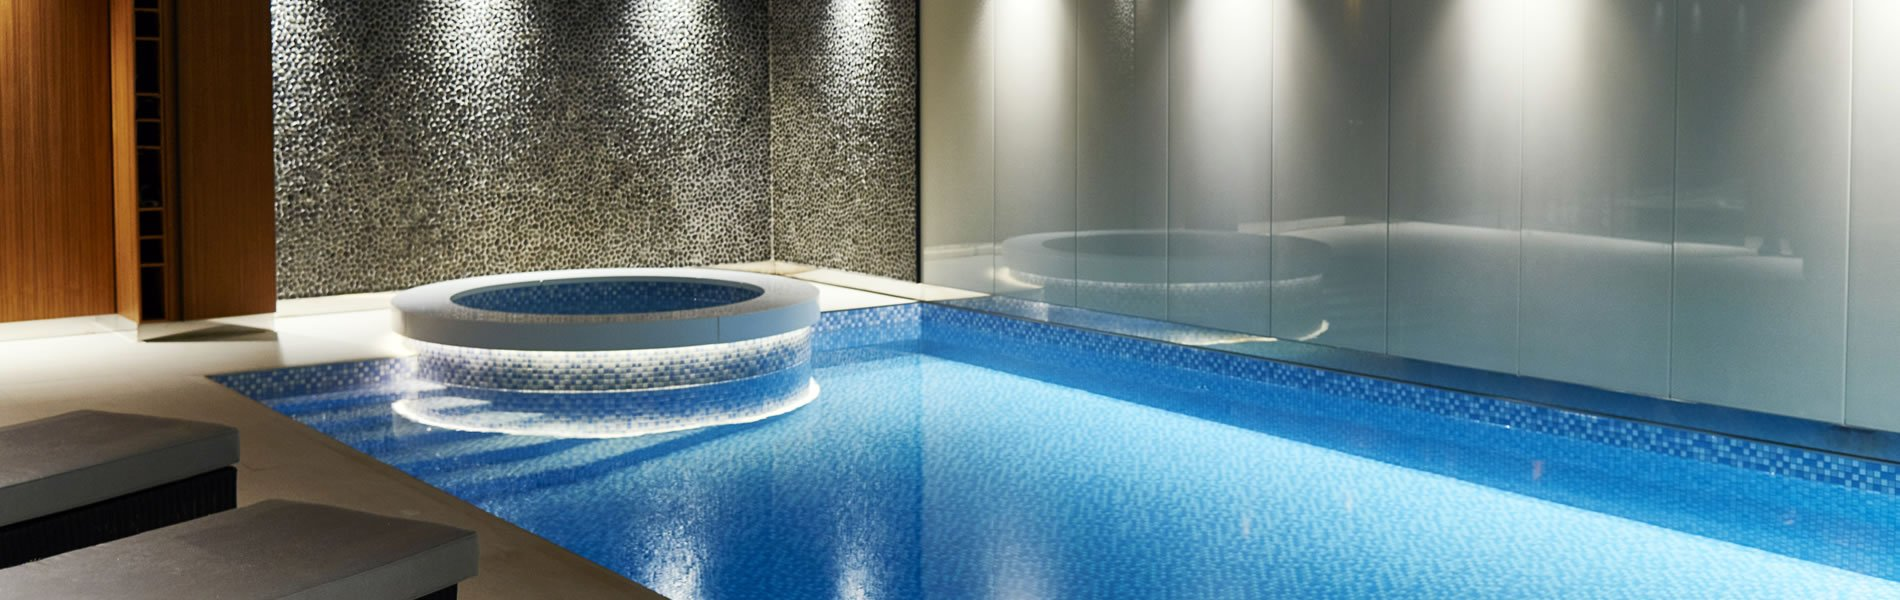 Roman pools swimming pool design installation for Basement swimming pool ideas